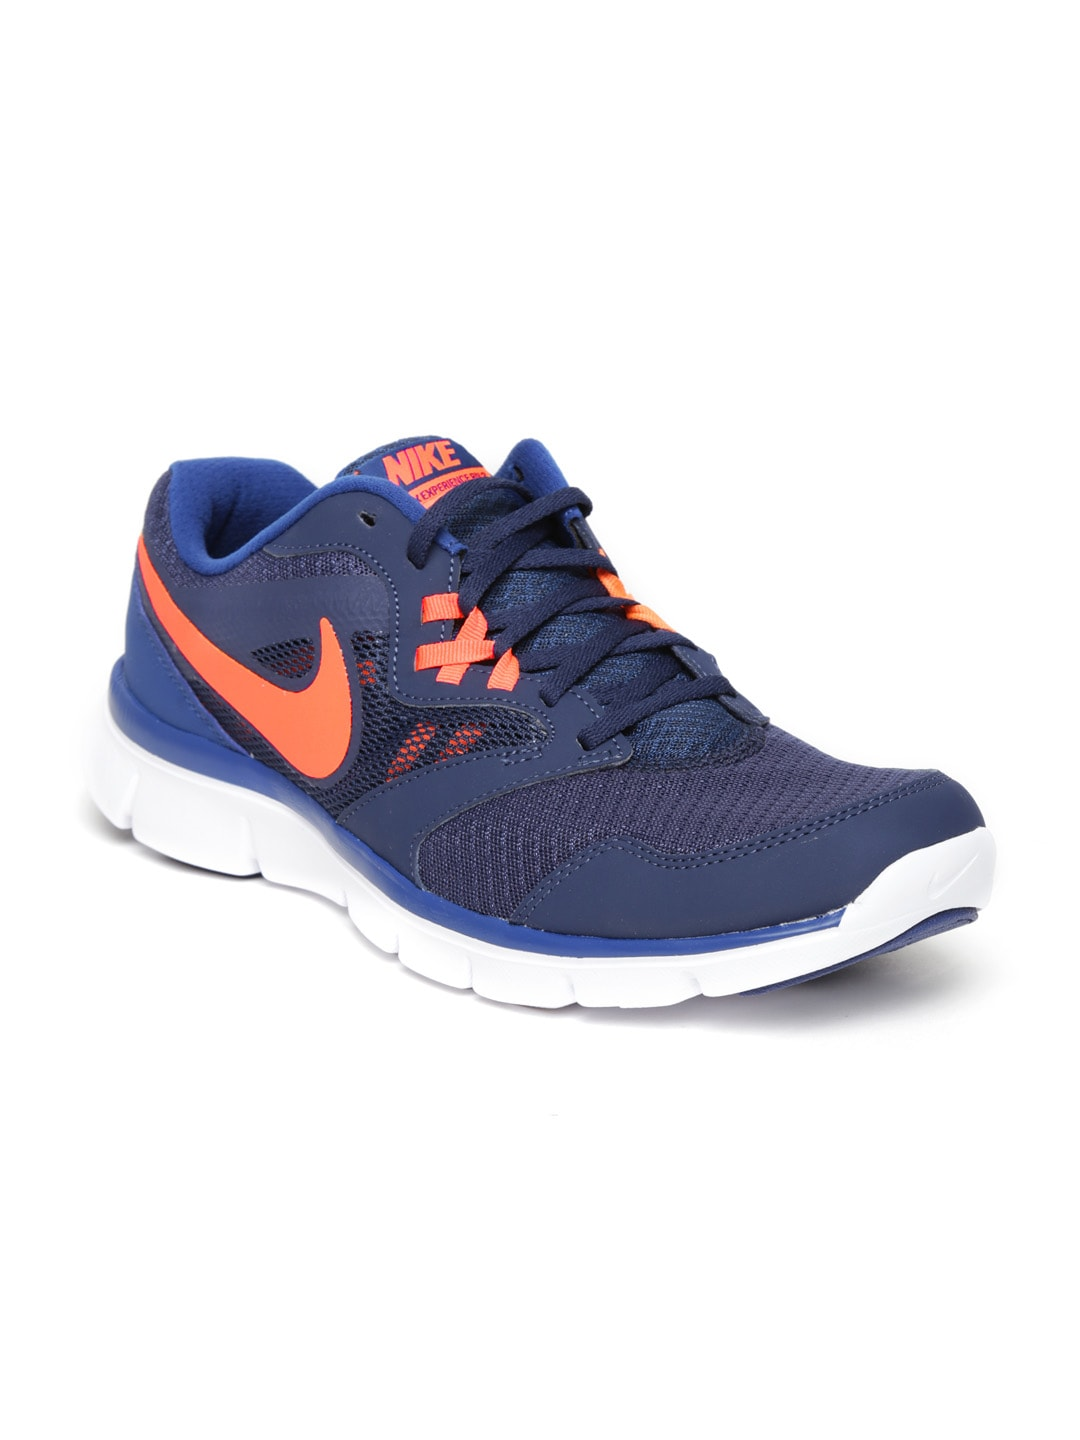 nike shoes nike shoes india myntra